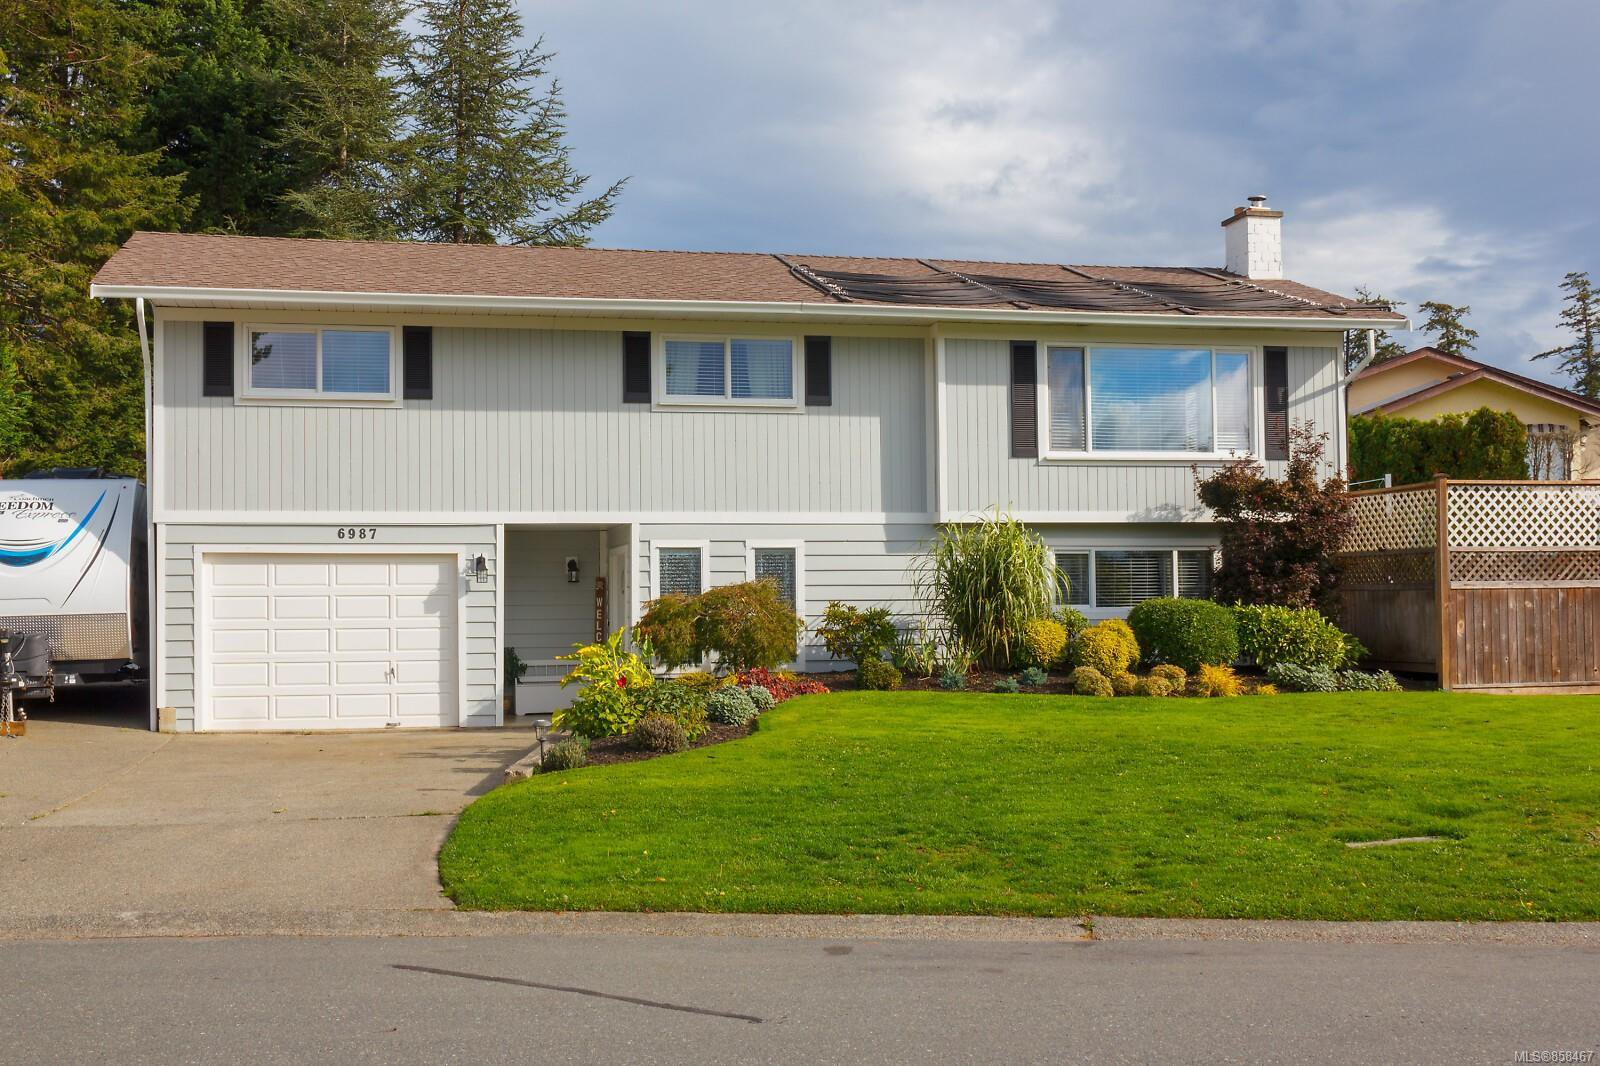 Main Photo: 6987 Rafiki Way in : CS Brentwood Bay House for sale (Central Saanich)  : MLS®# 858467